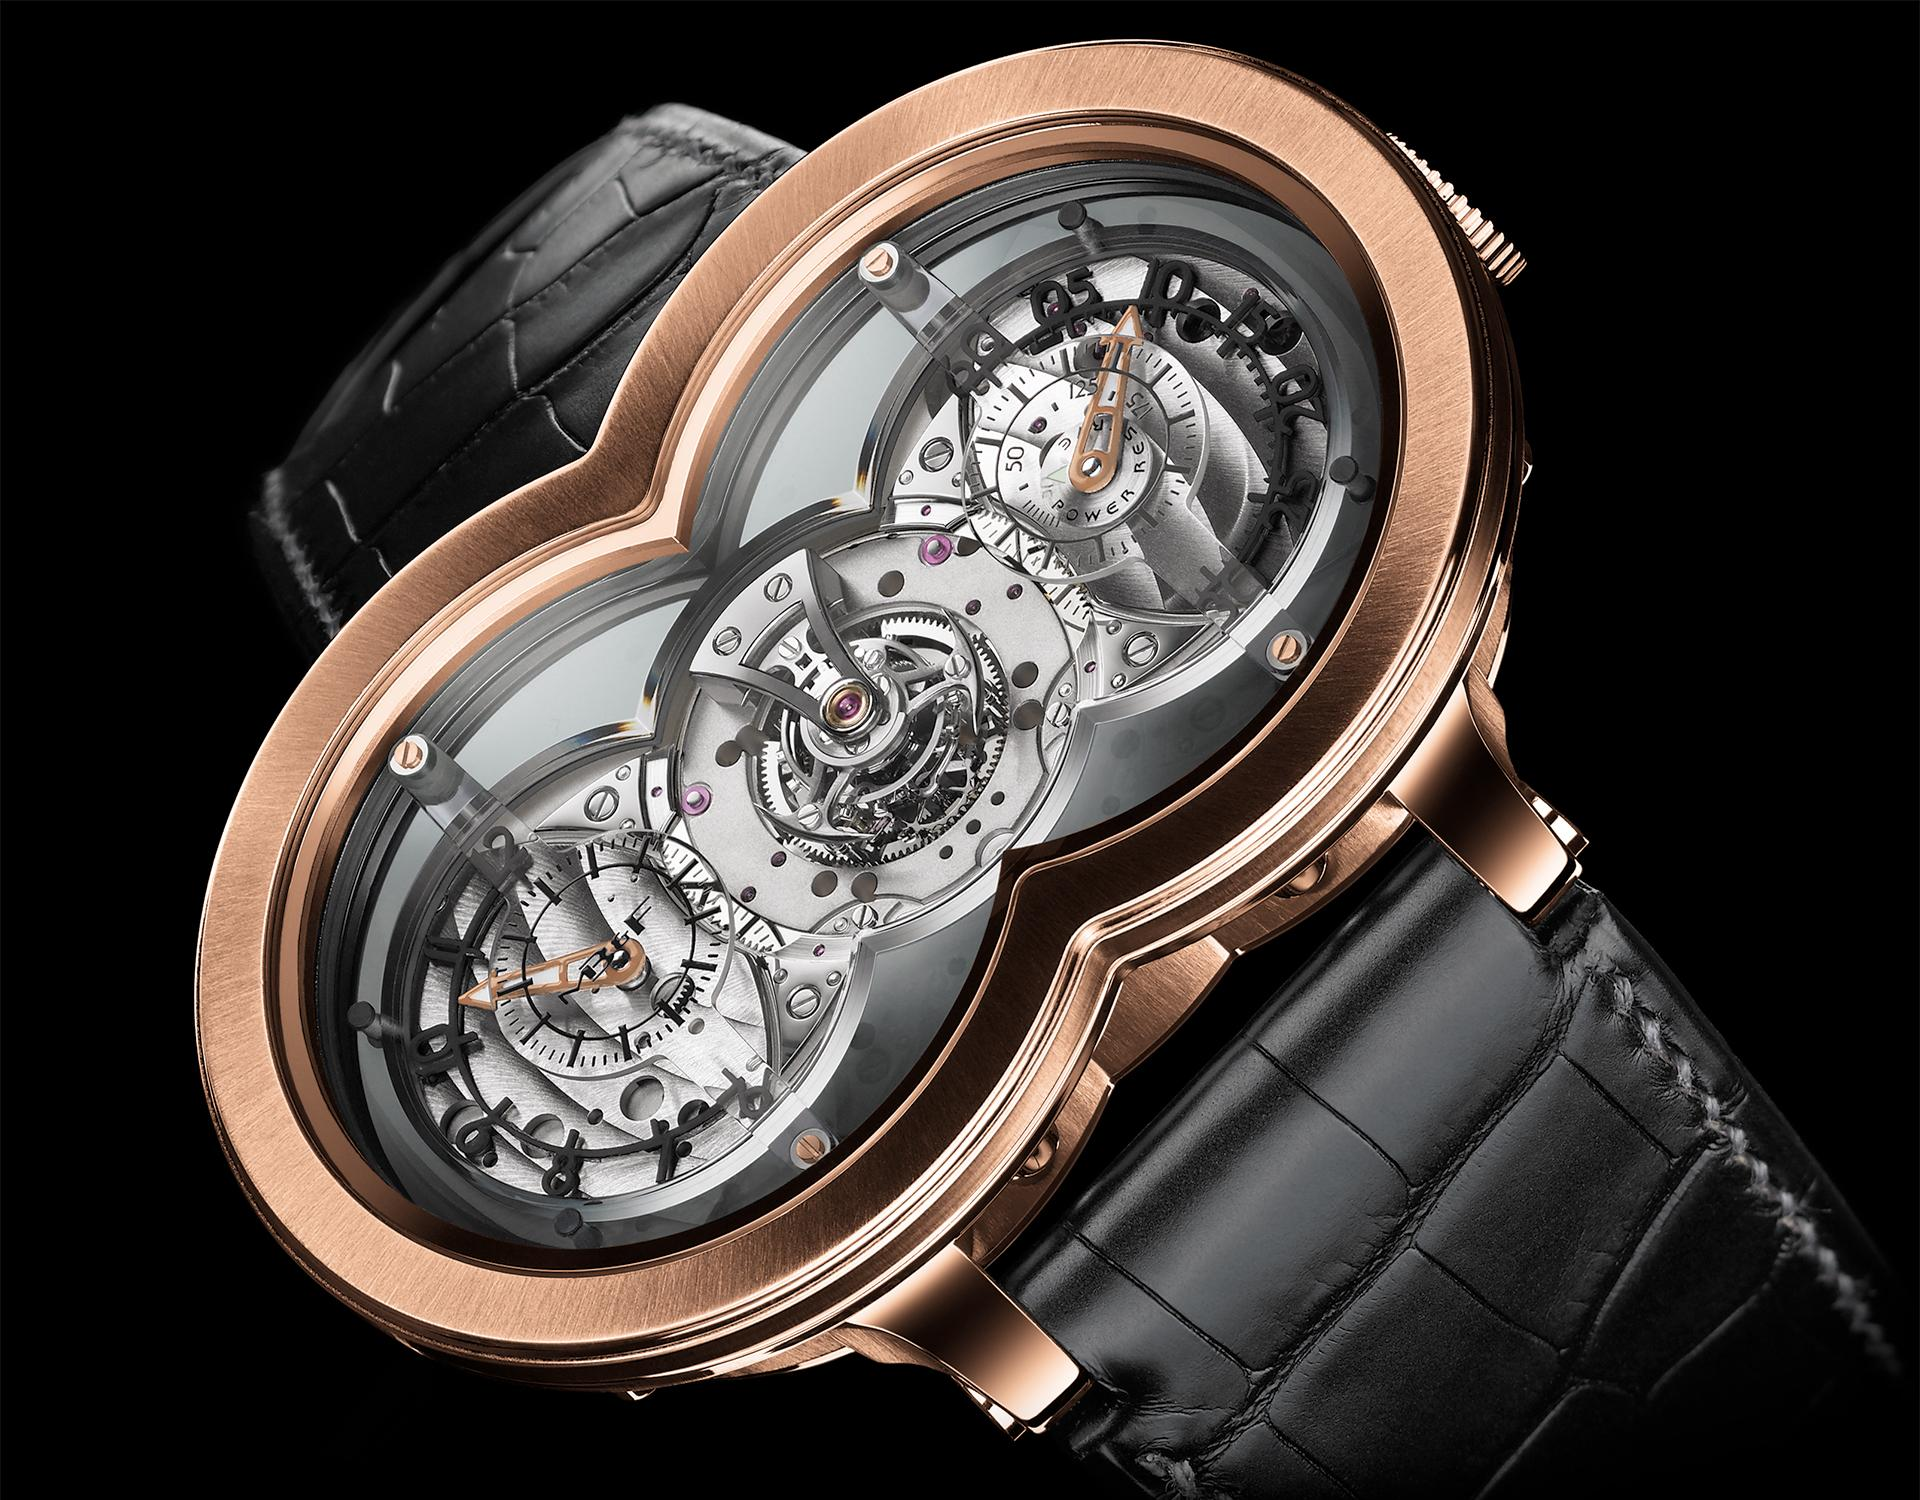 MB&F HM01 watch – MB&F's first watch design